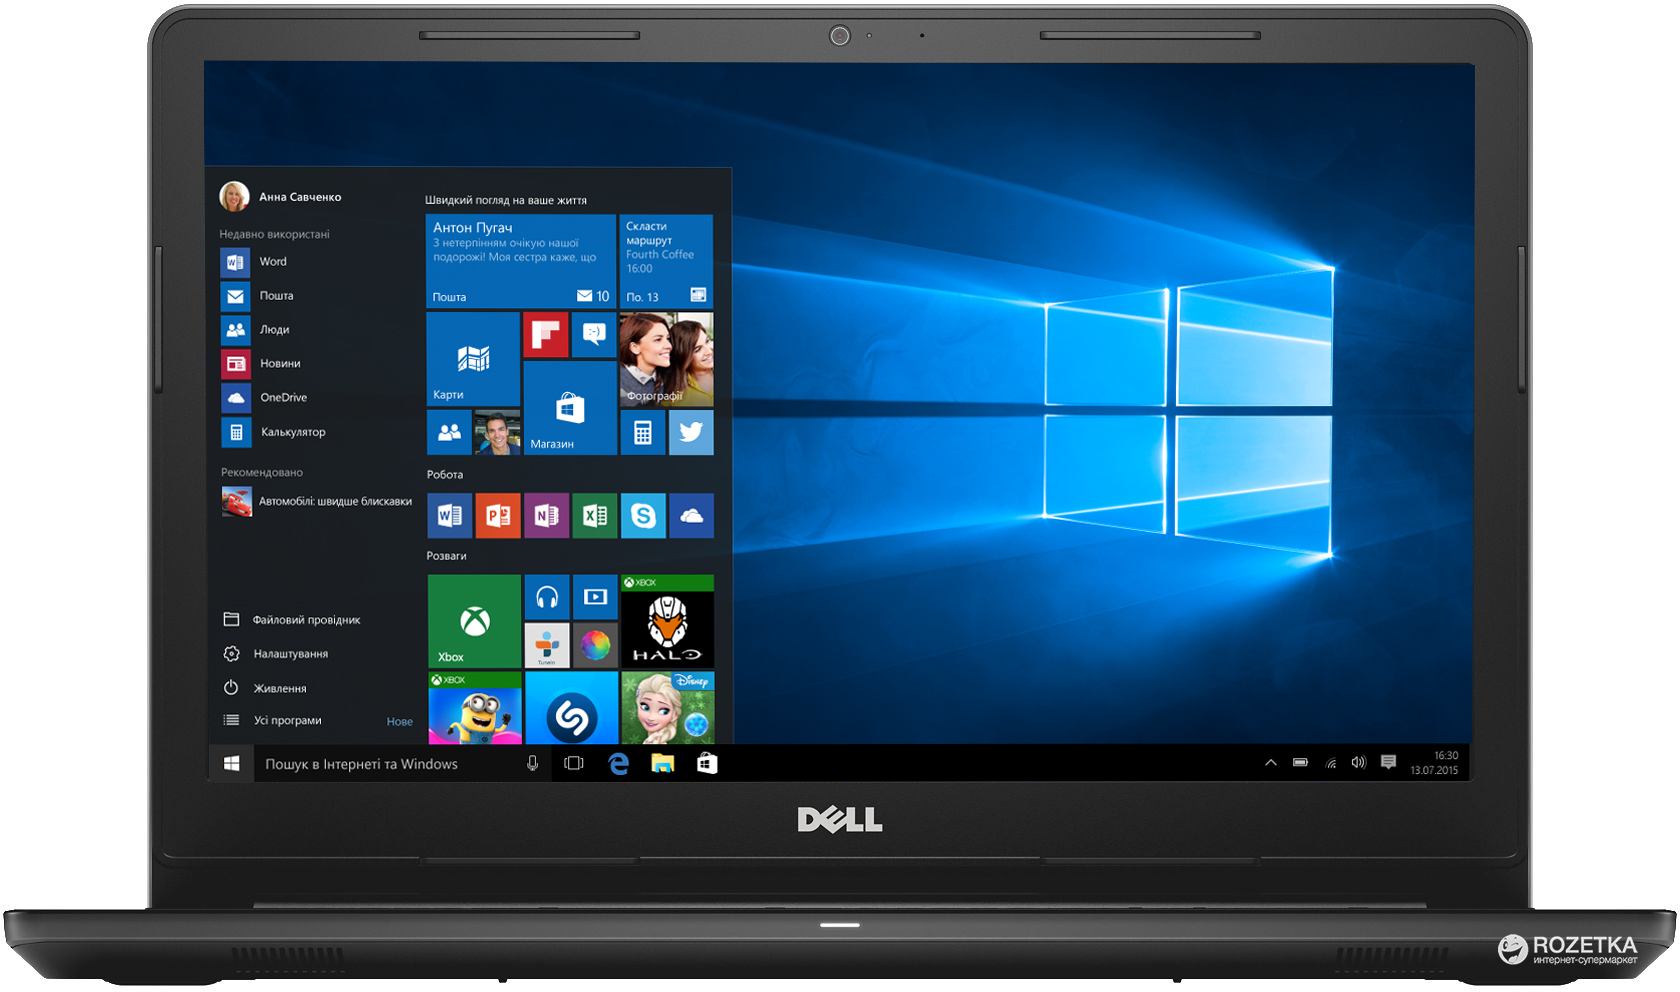 Dell Inspiron 535 WLAN Windows 8 Drivers Download (2019)